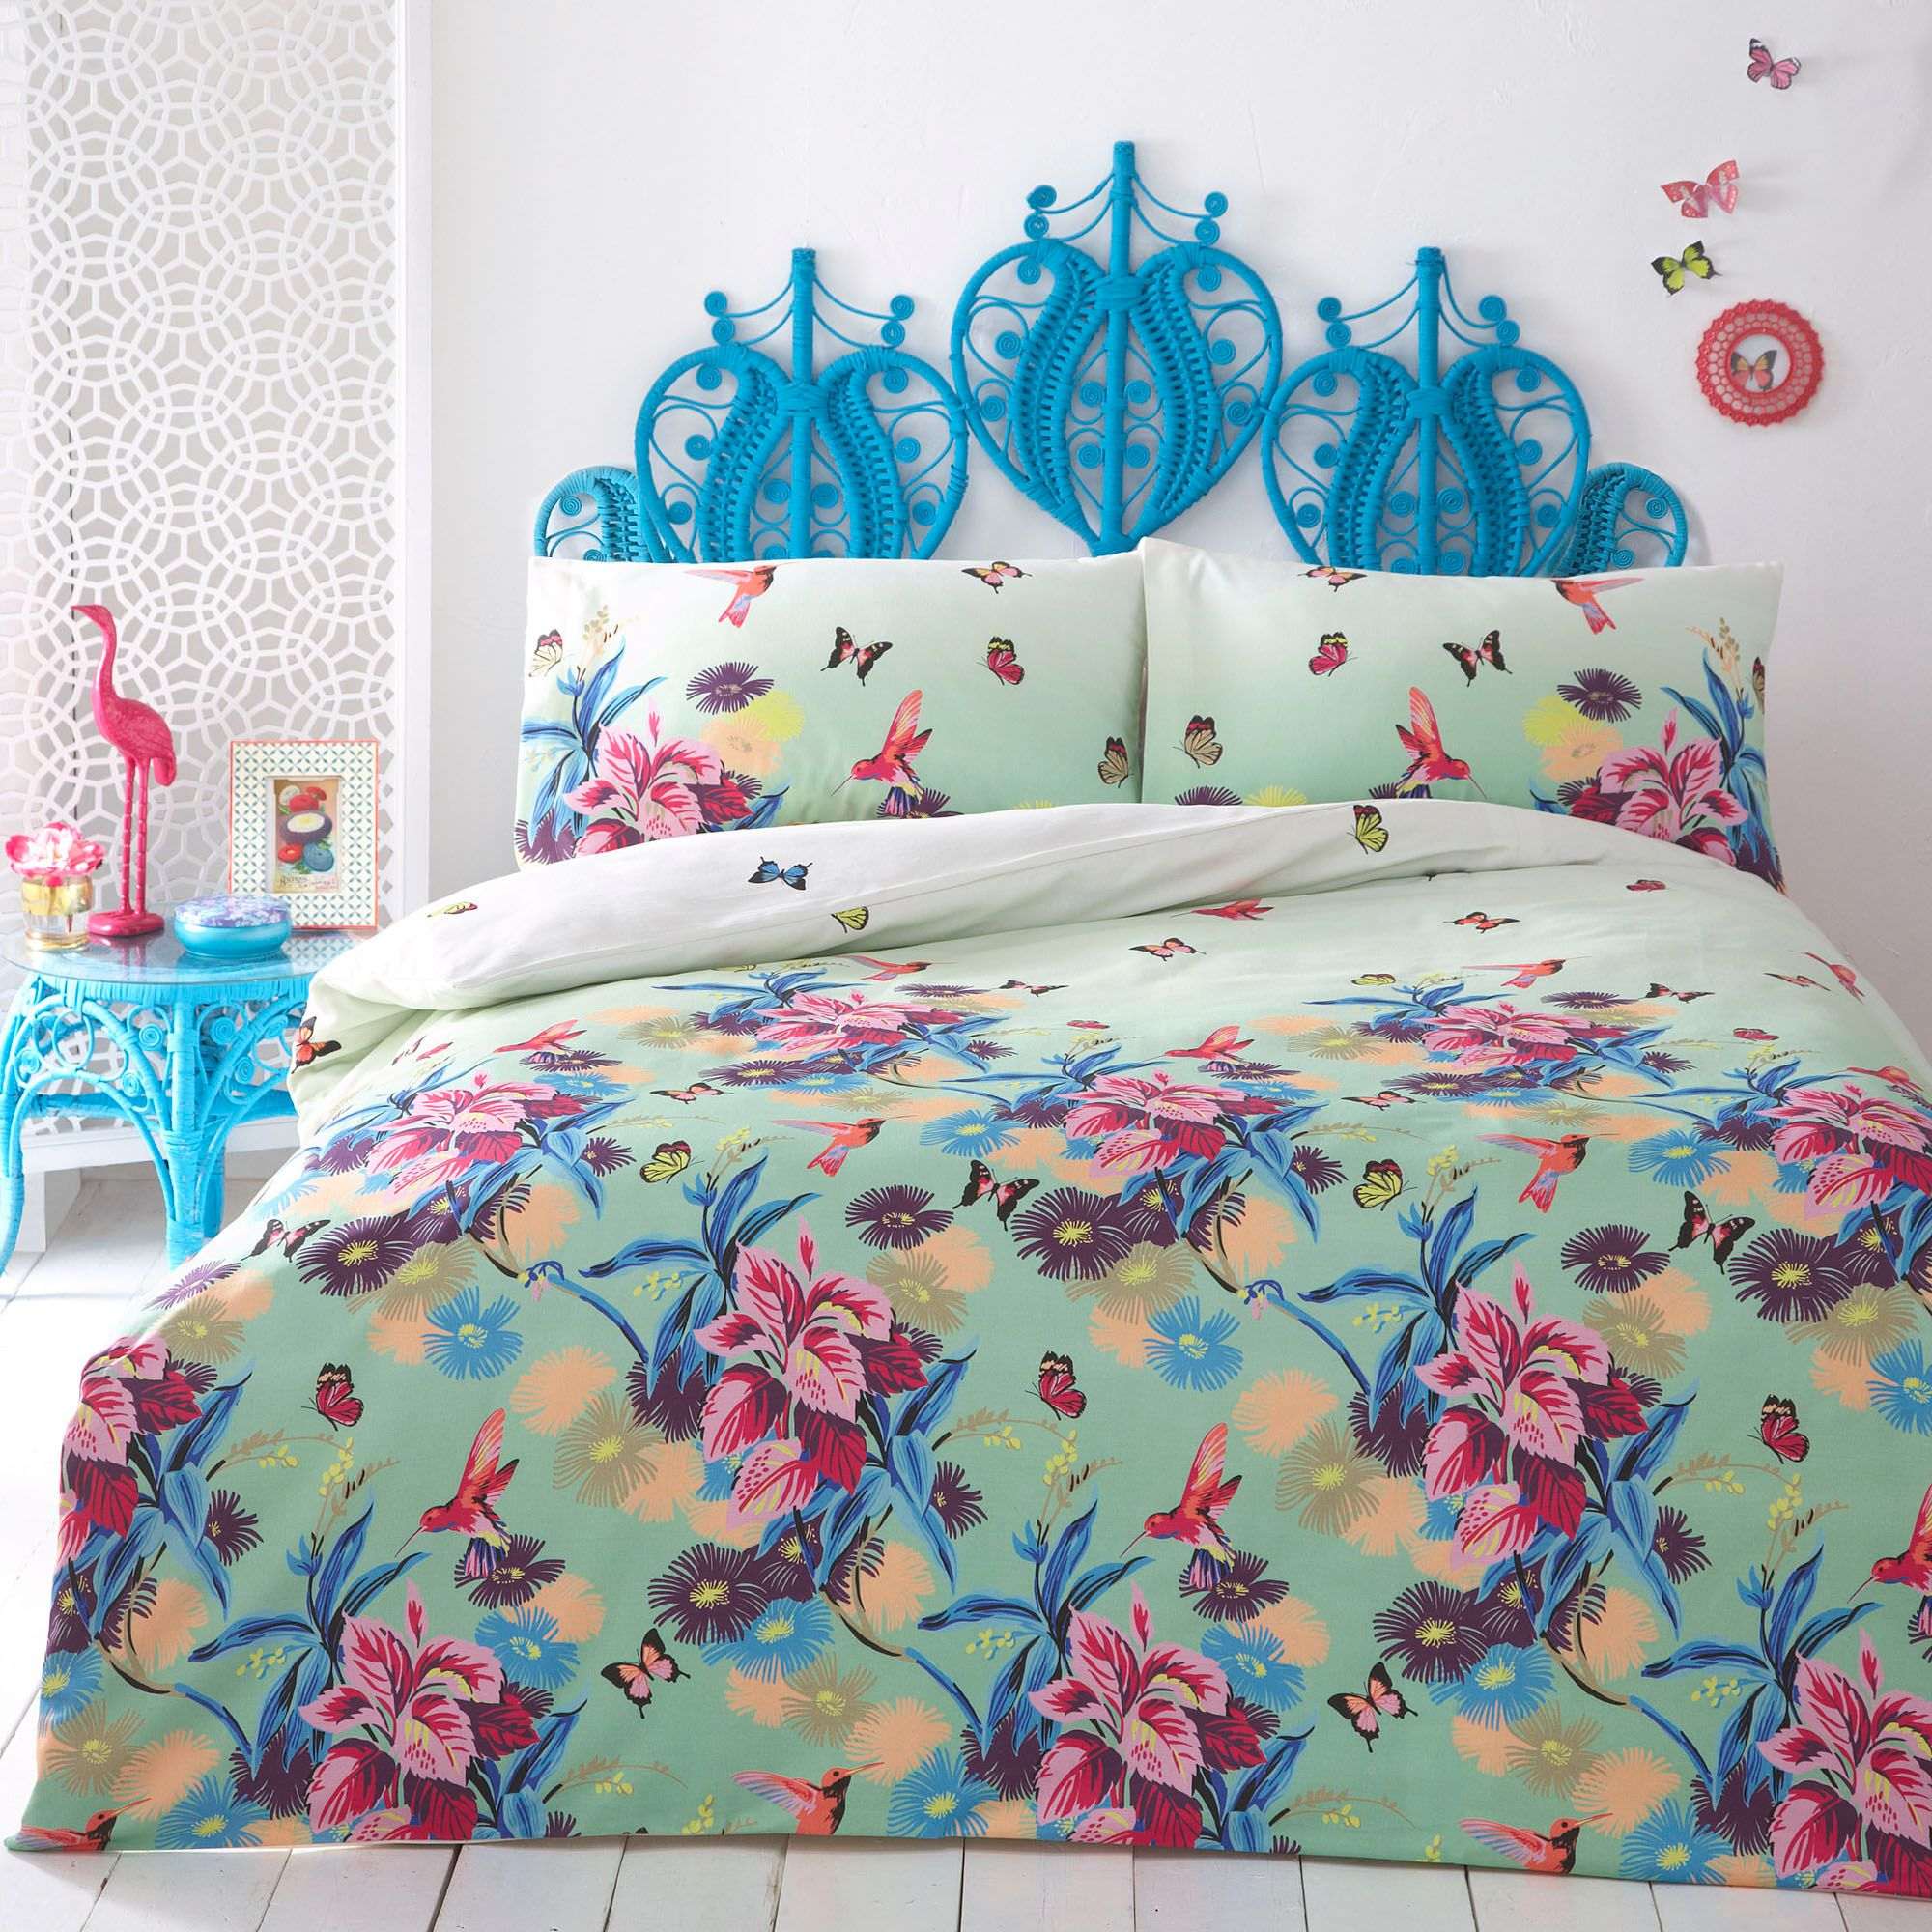 MATTHEW WILLIAMSON KING Size DUVET COVER SET Butterfly Paradise BRAND NEW Perfect for brightening up bedrooms, this bedding set from Matthew Williamson features a beautiful butterfly and floral print in mixed purples and pinks, on a lilac base.